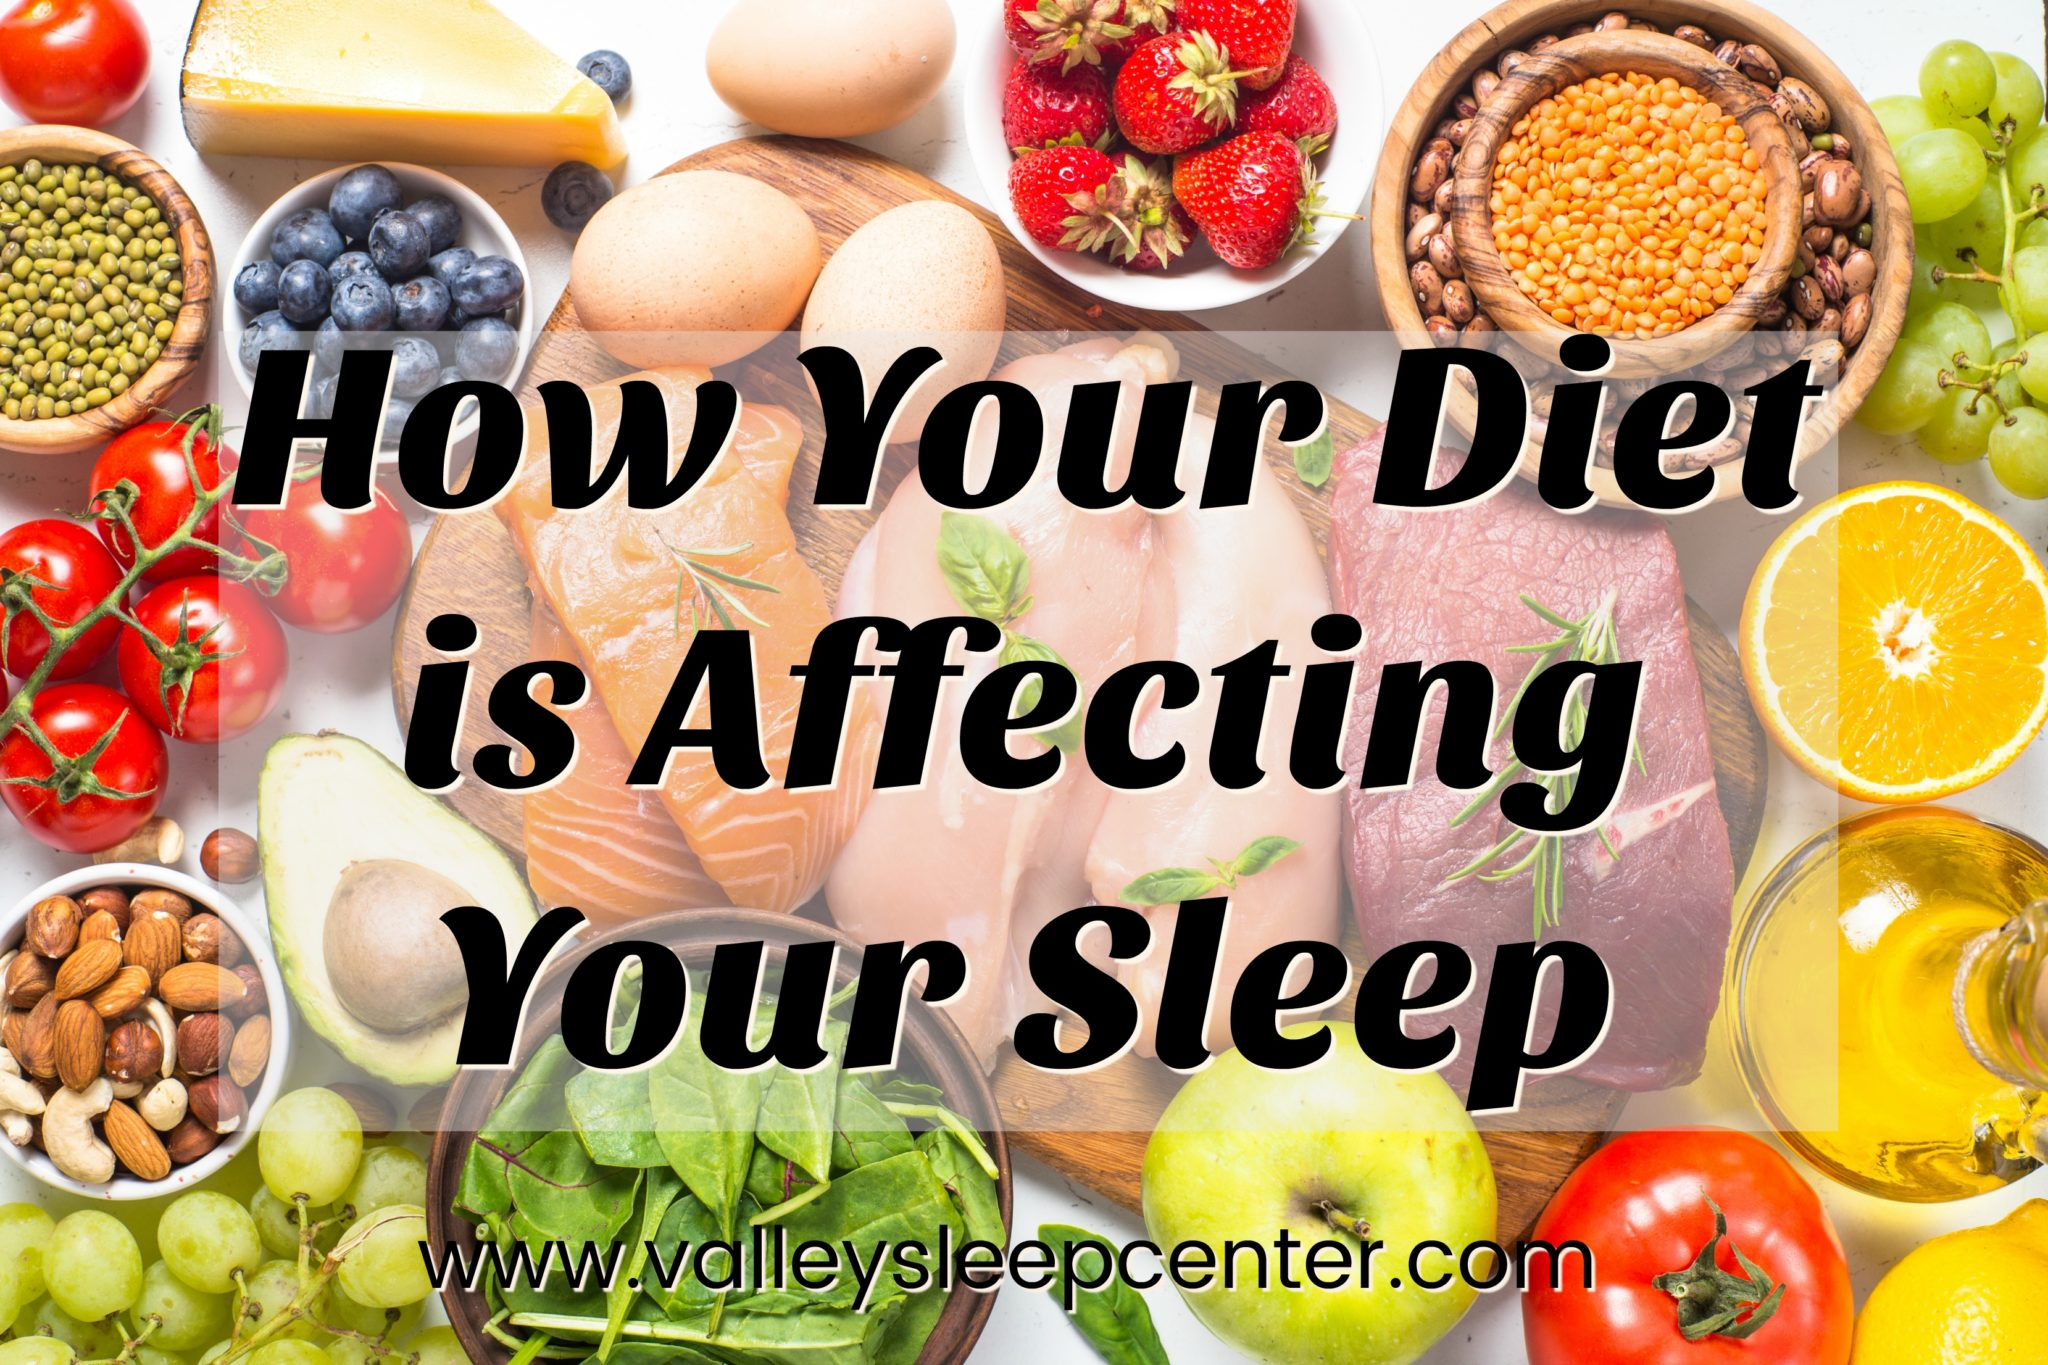 How your diet is affecting your sleep valley sleep center